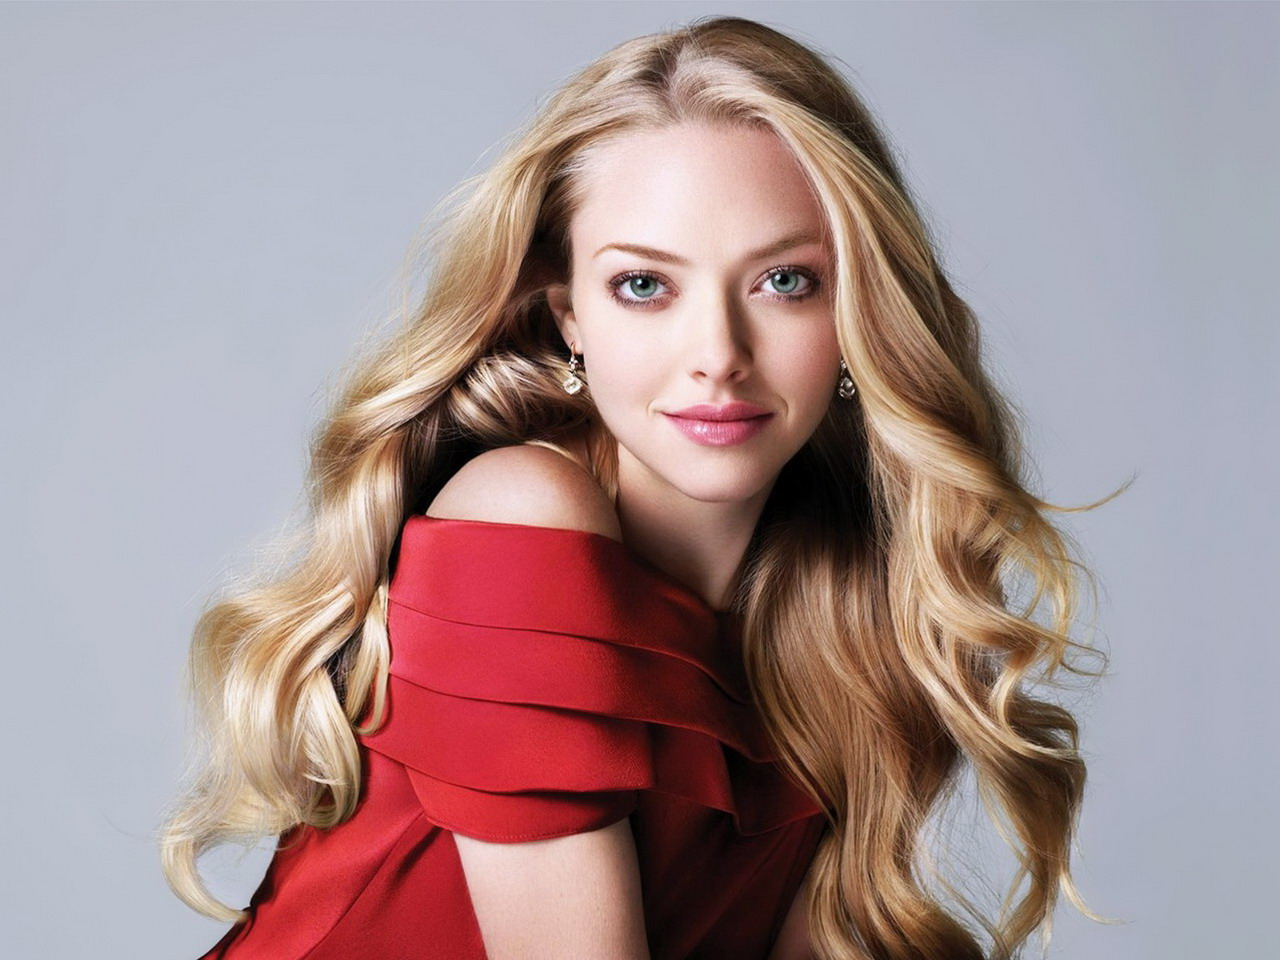 http://hollywoodhatesme.files.wordpress.com/2012/02/amanda-seyfried-2.jpg